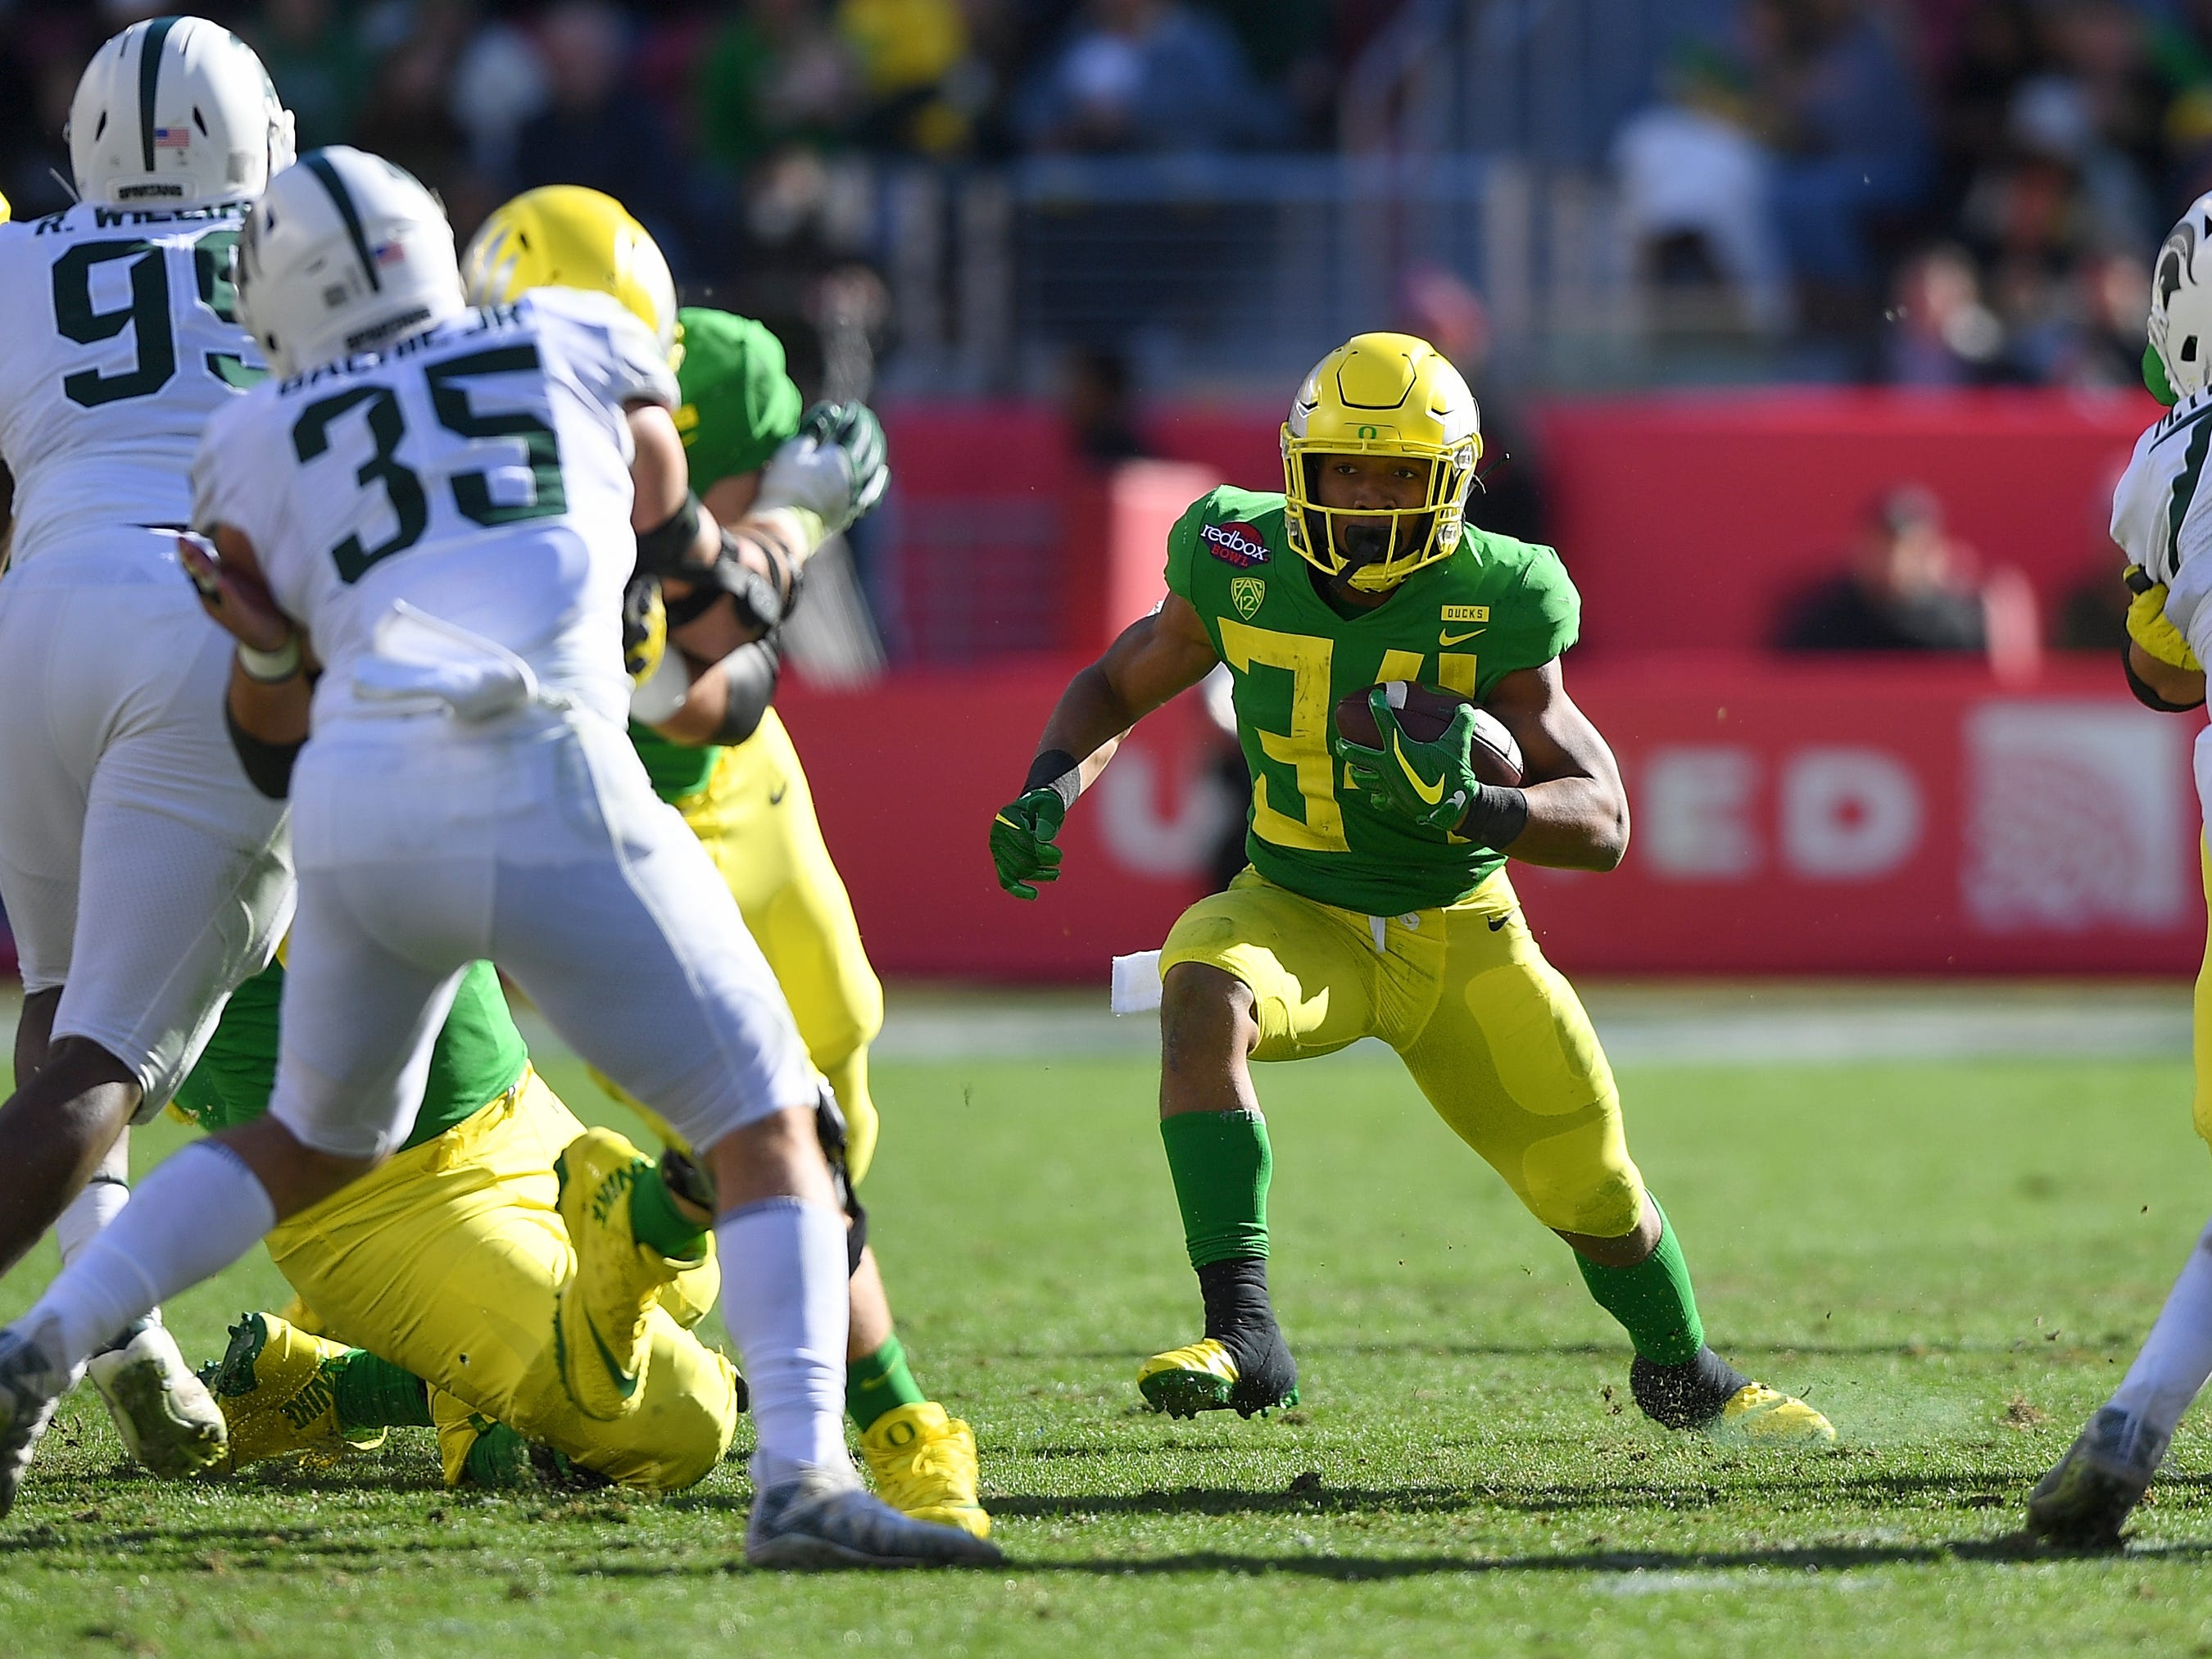 CJ Verdell #34 of the Oregon Ducks carries the ball against the Michigan State Spartans during the first half of the Redbox Bowl at Levi's Stadium on December 31, 2018 in Santa Clara, California.